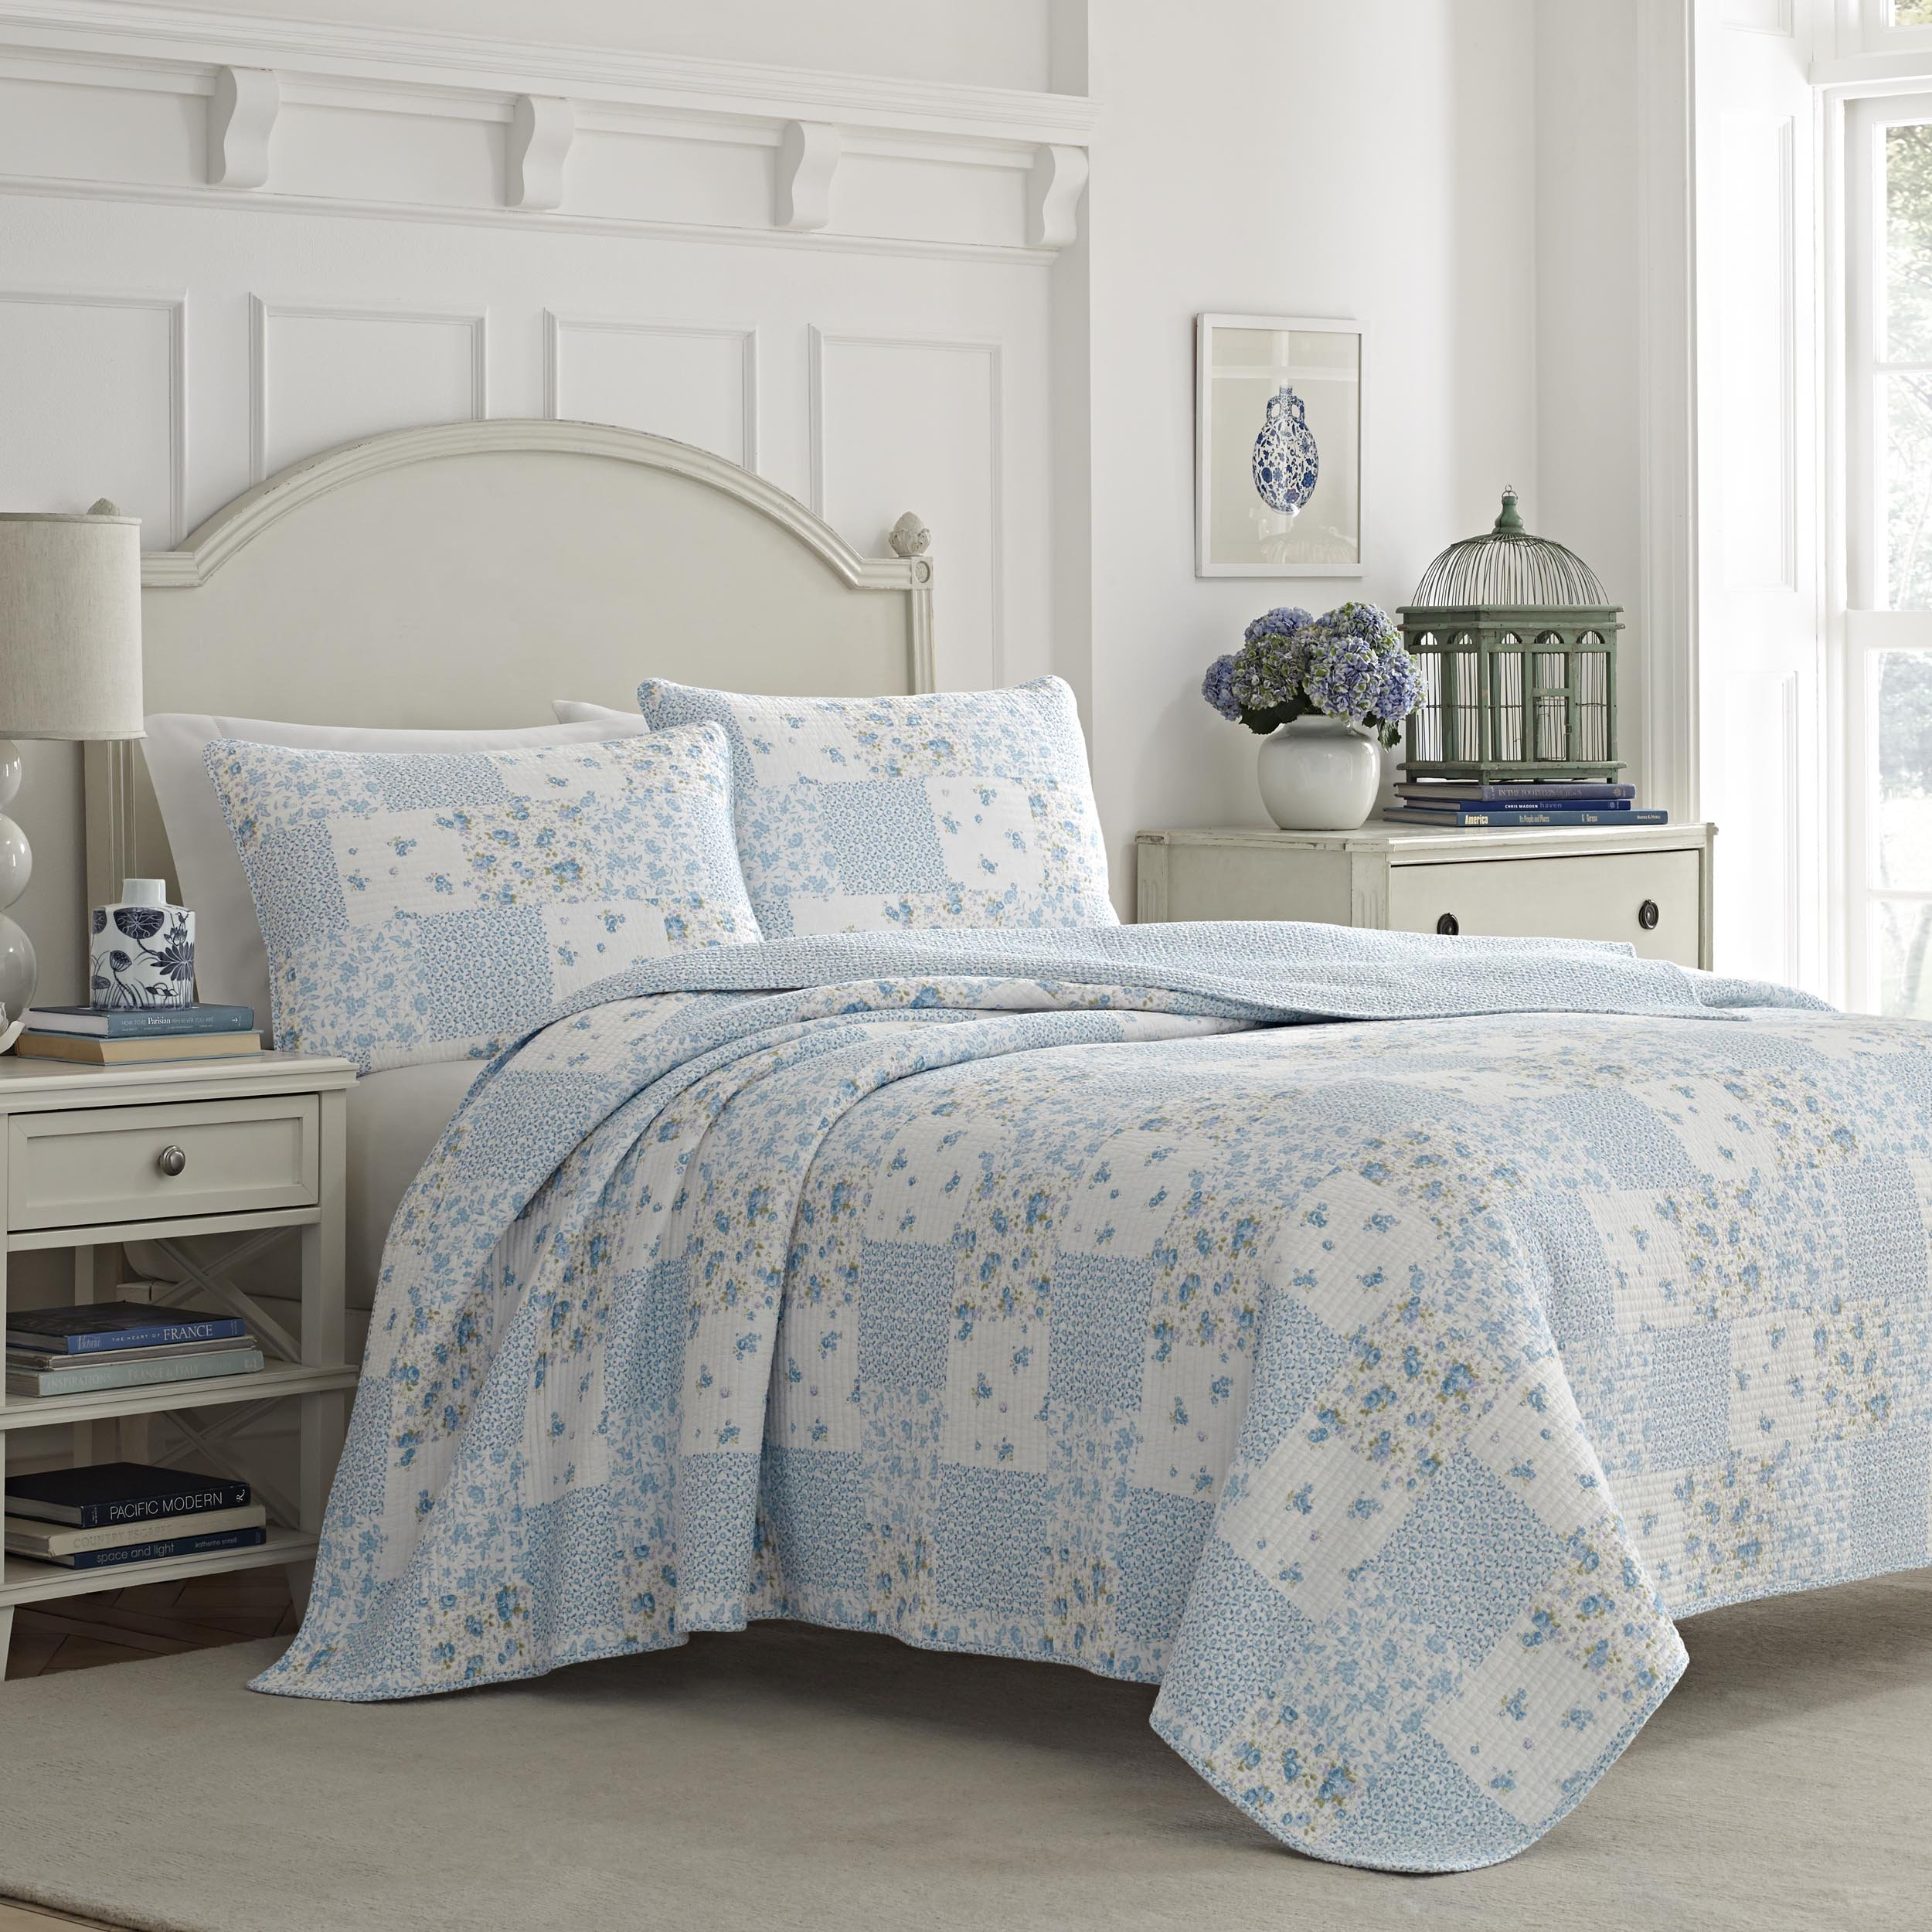 Laura Ashley Kenna Cotton Quilt Set, Full/Queen, Lt/Pastel Blue